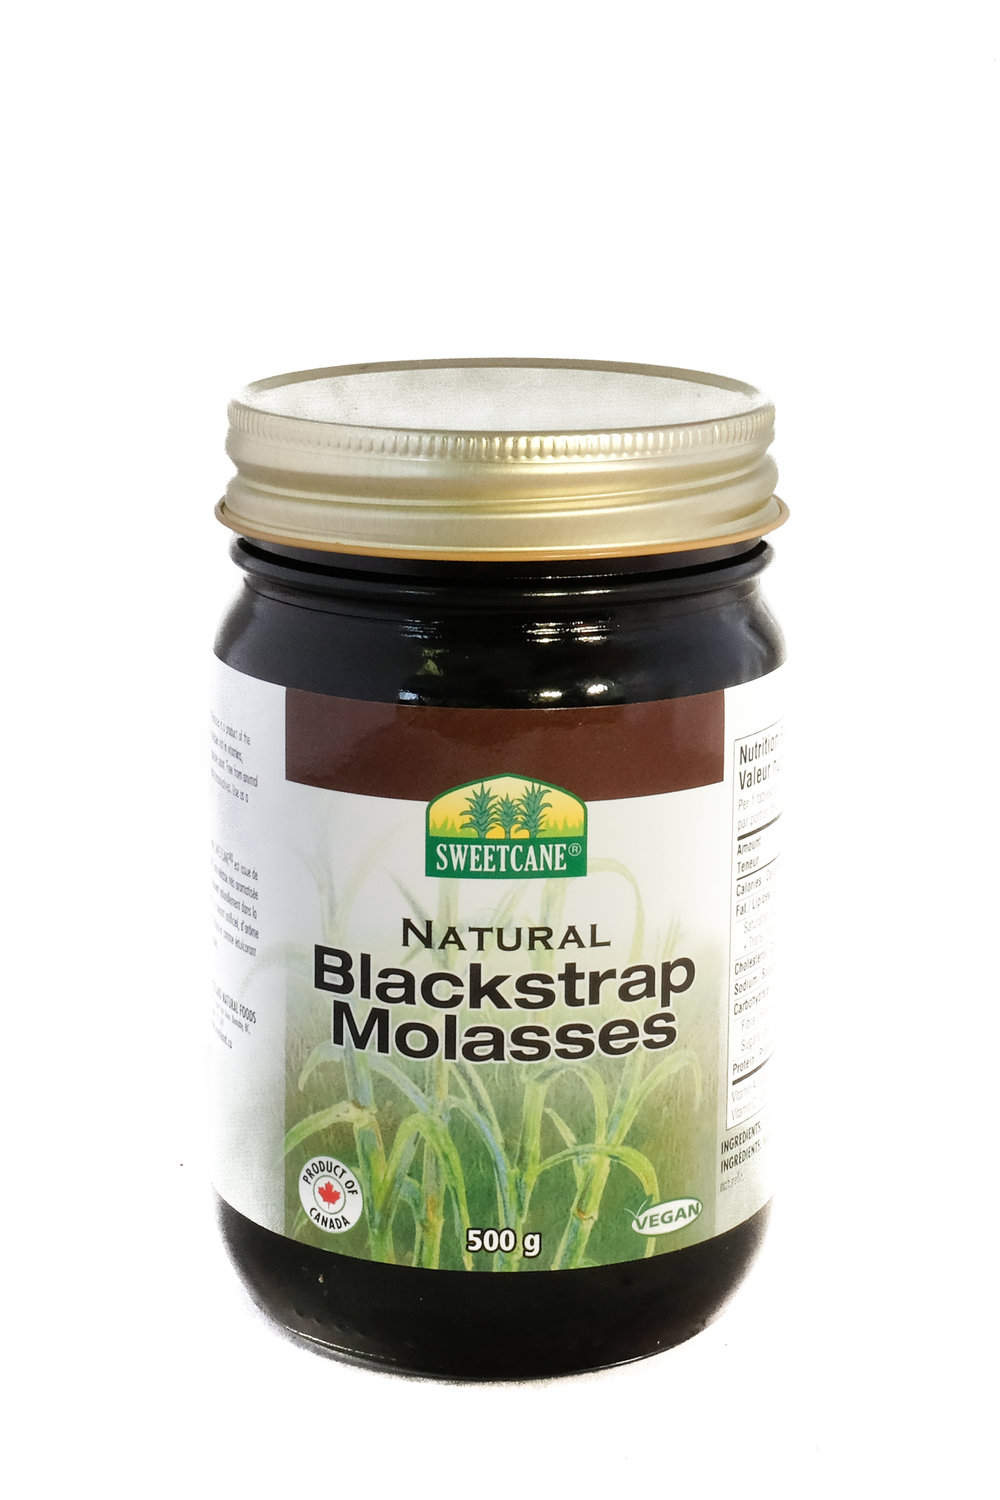 Natural Blackstrap Molasses